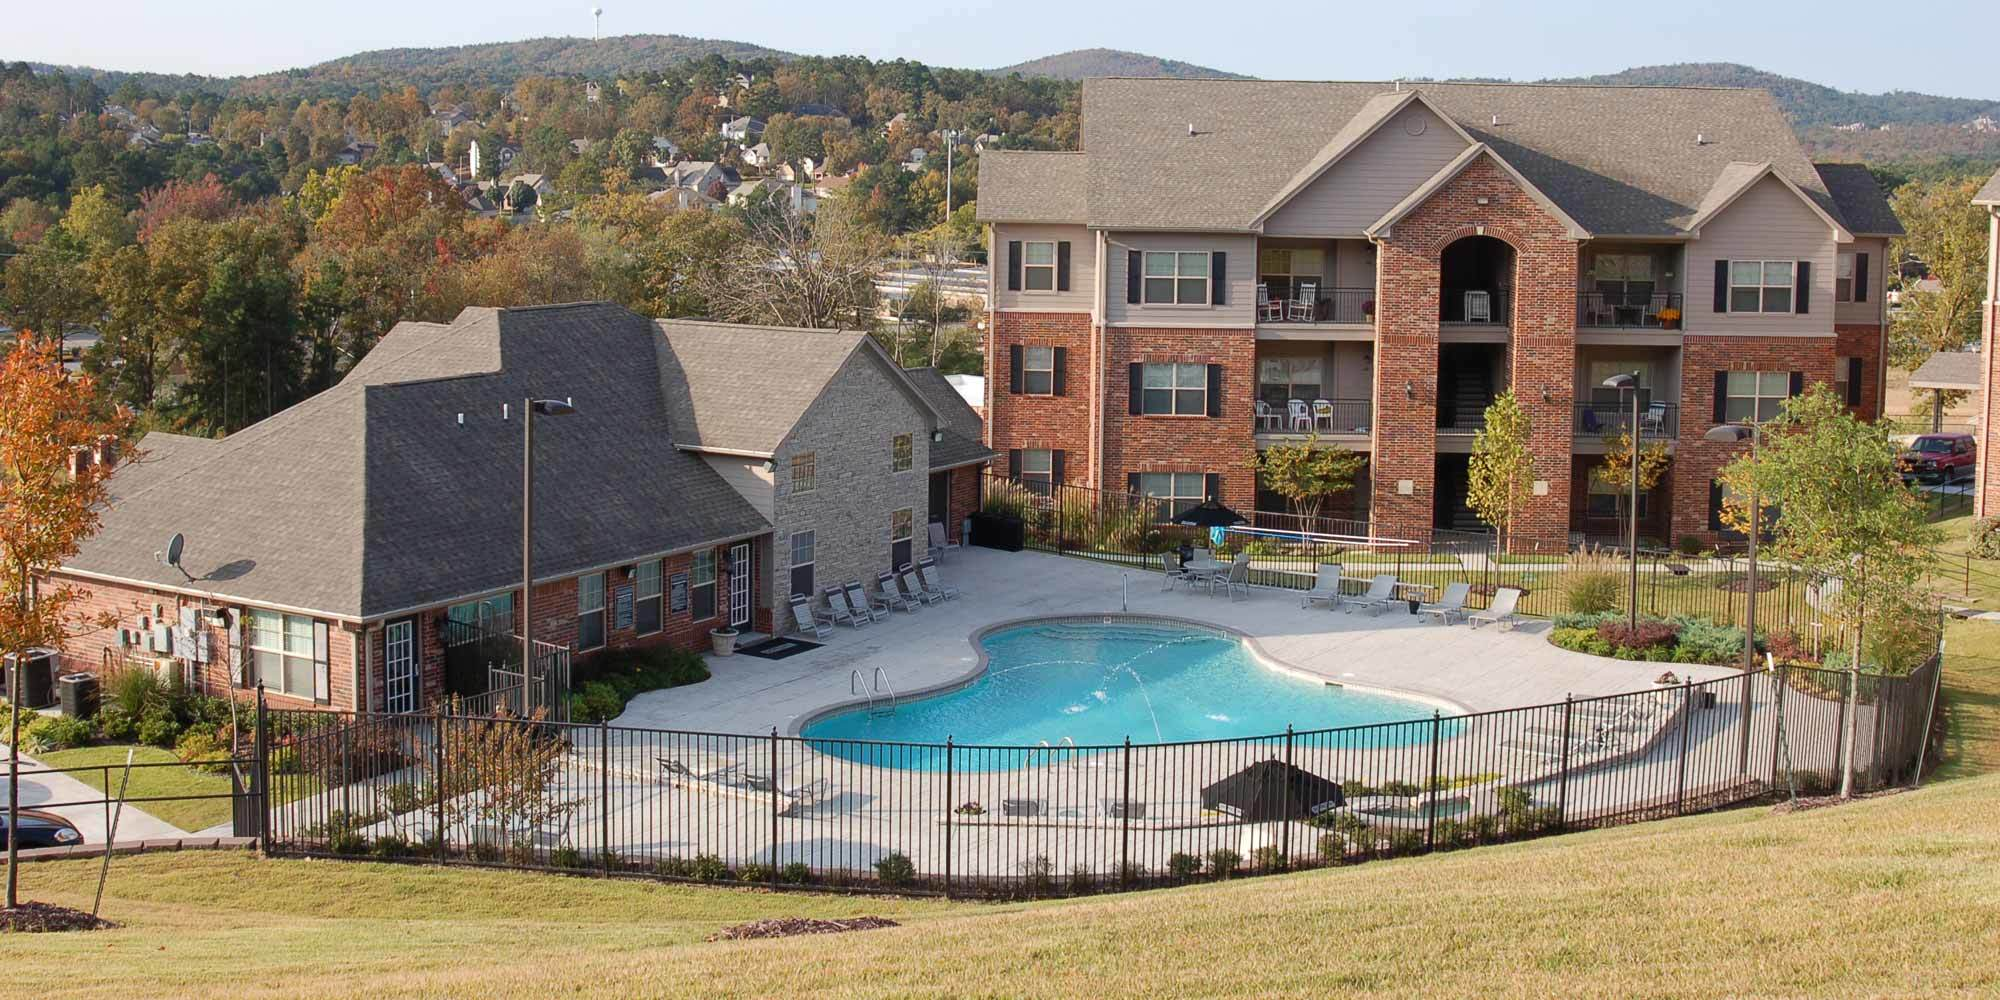 Little Rock apartments for rent have a spacious pool area for you